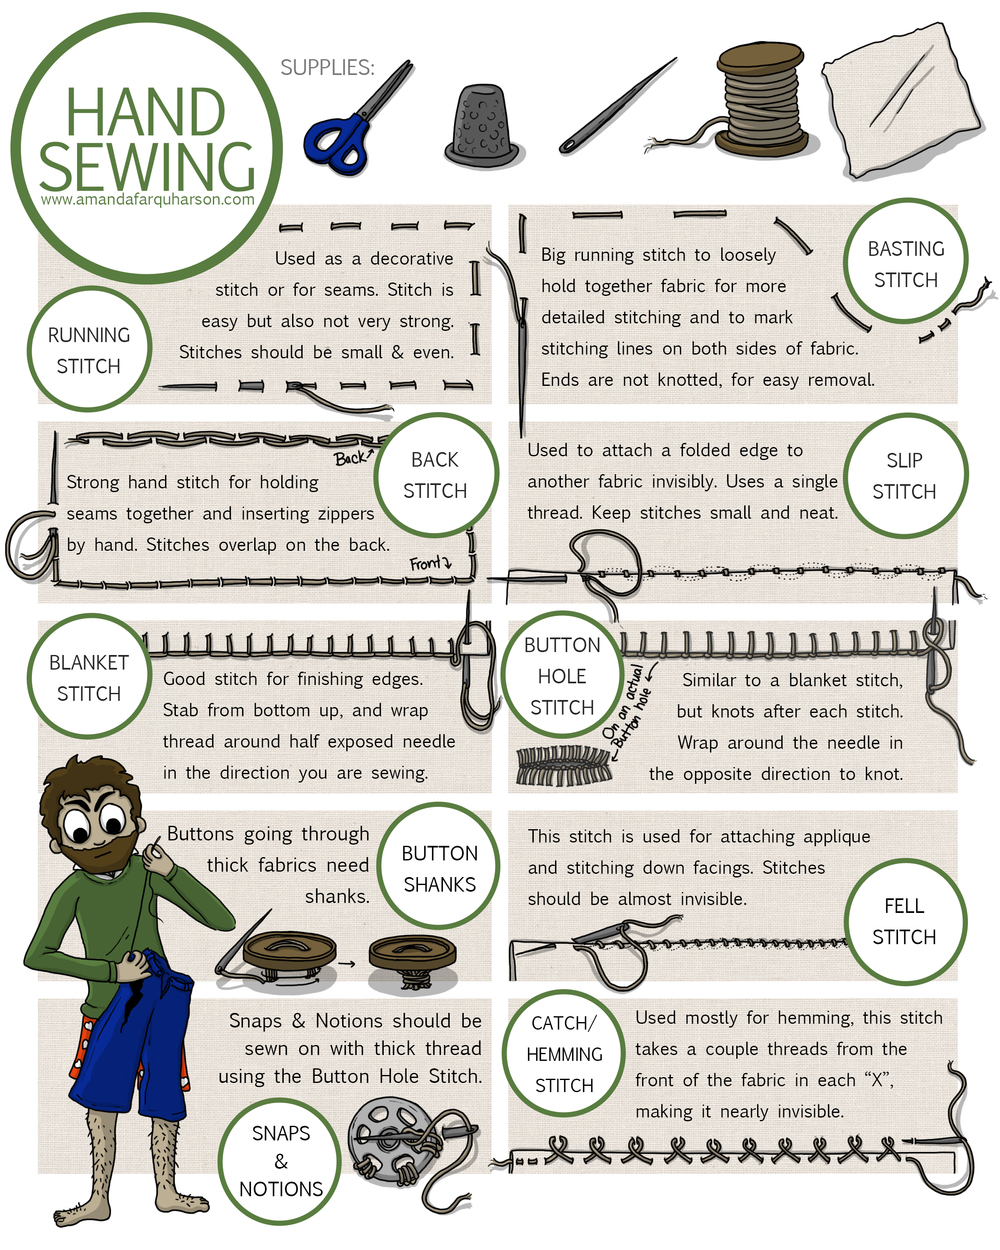 the 8 most helpful hand sewing stitches amanda farquharson. Black Bedroom Furniture Sets. Home Design Ideas